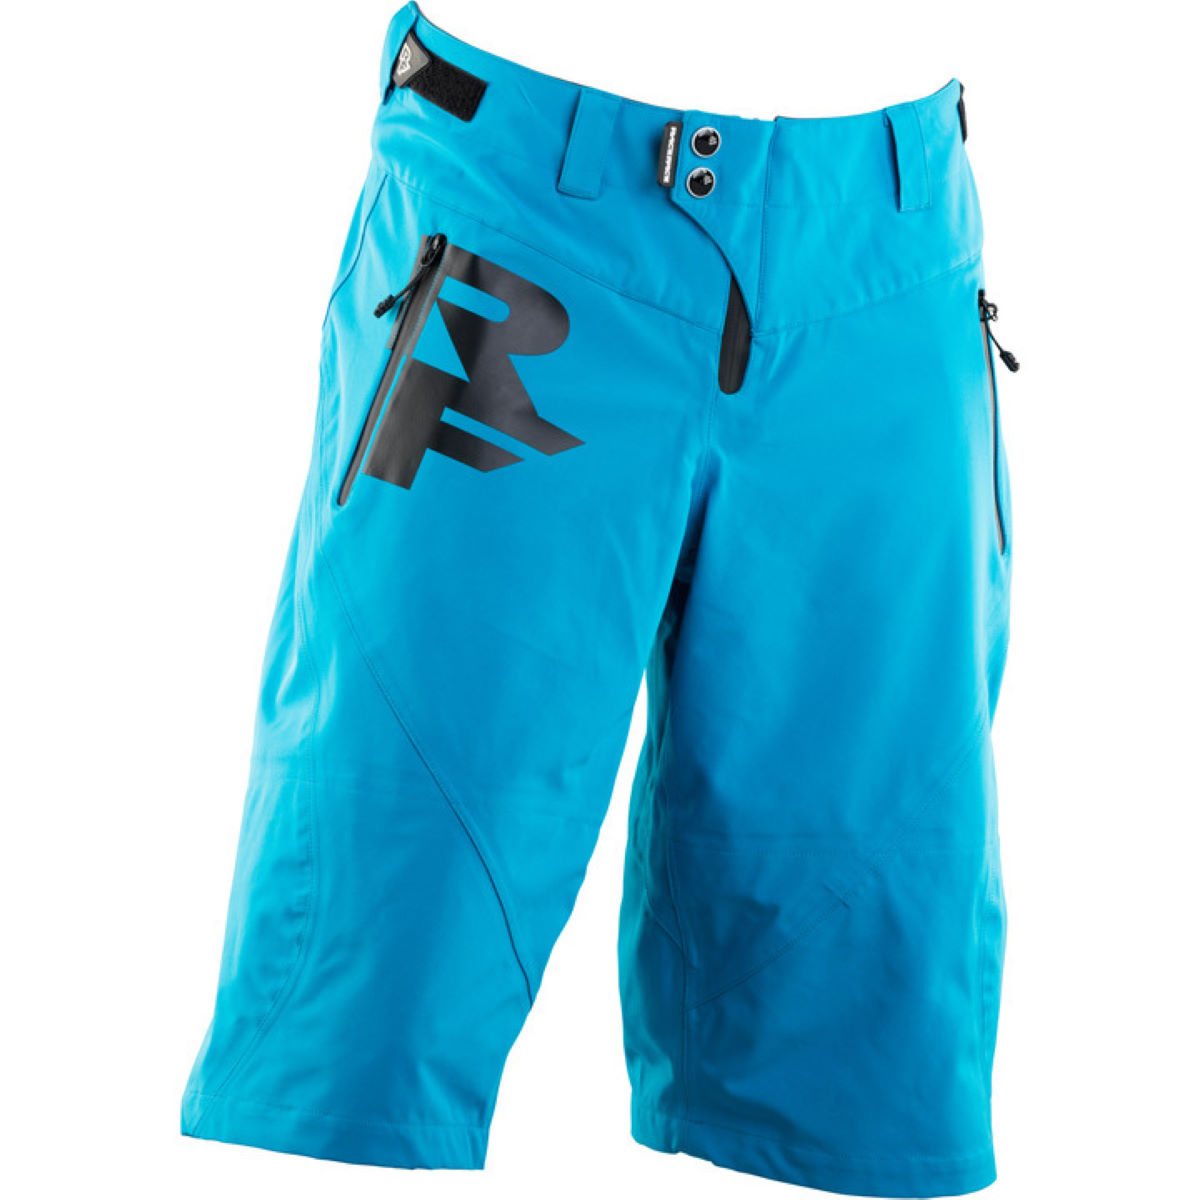 Short Race Face Agent (hiver) - M Bleu Shorts amples